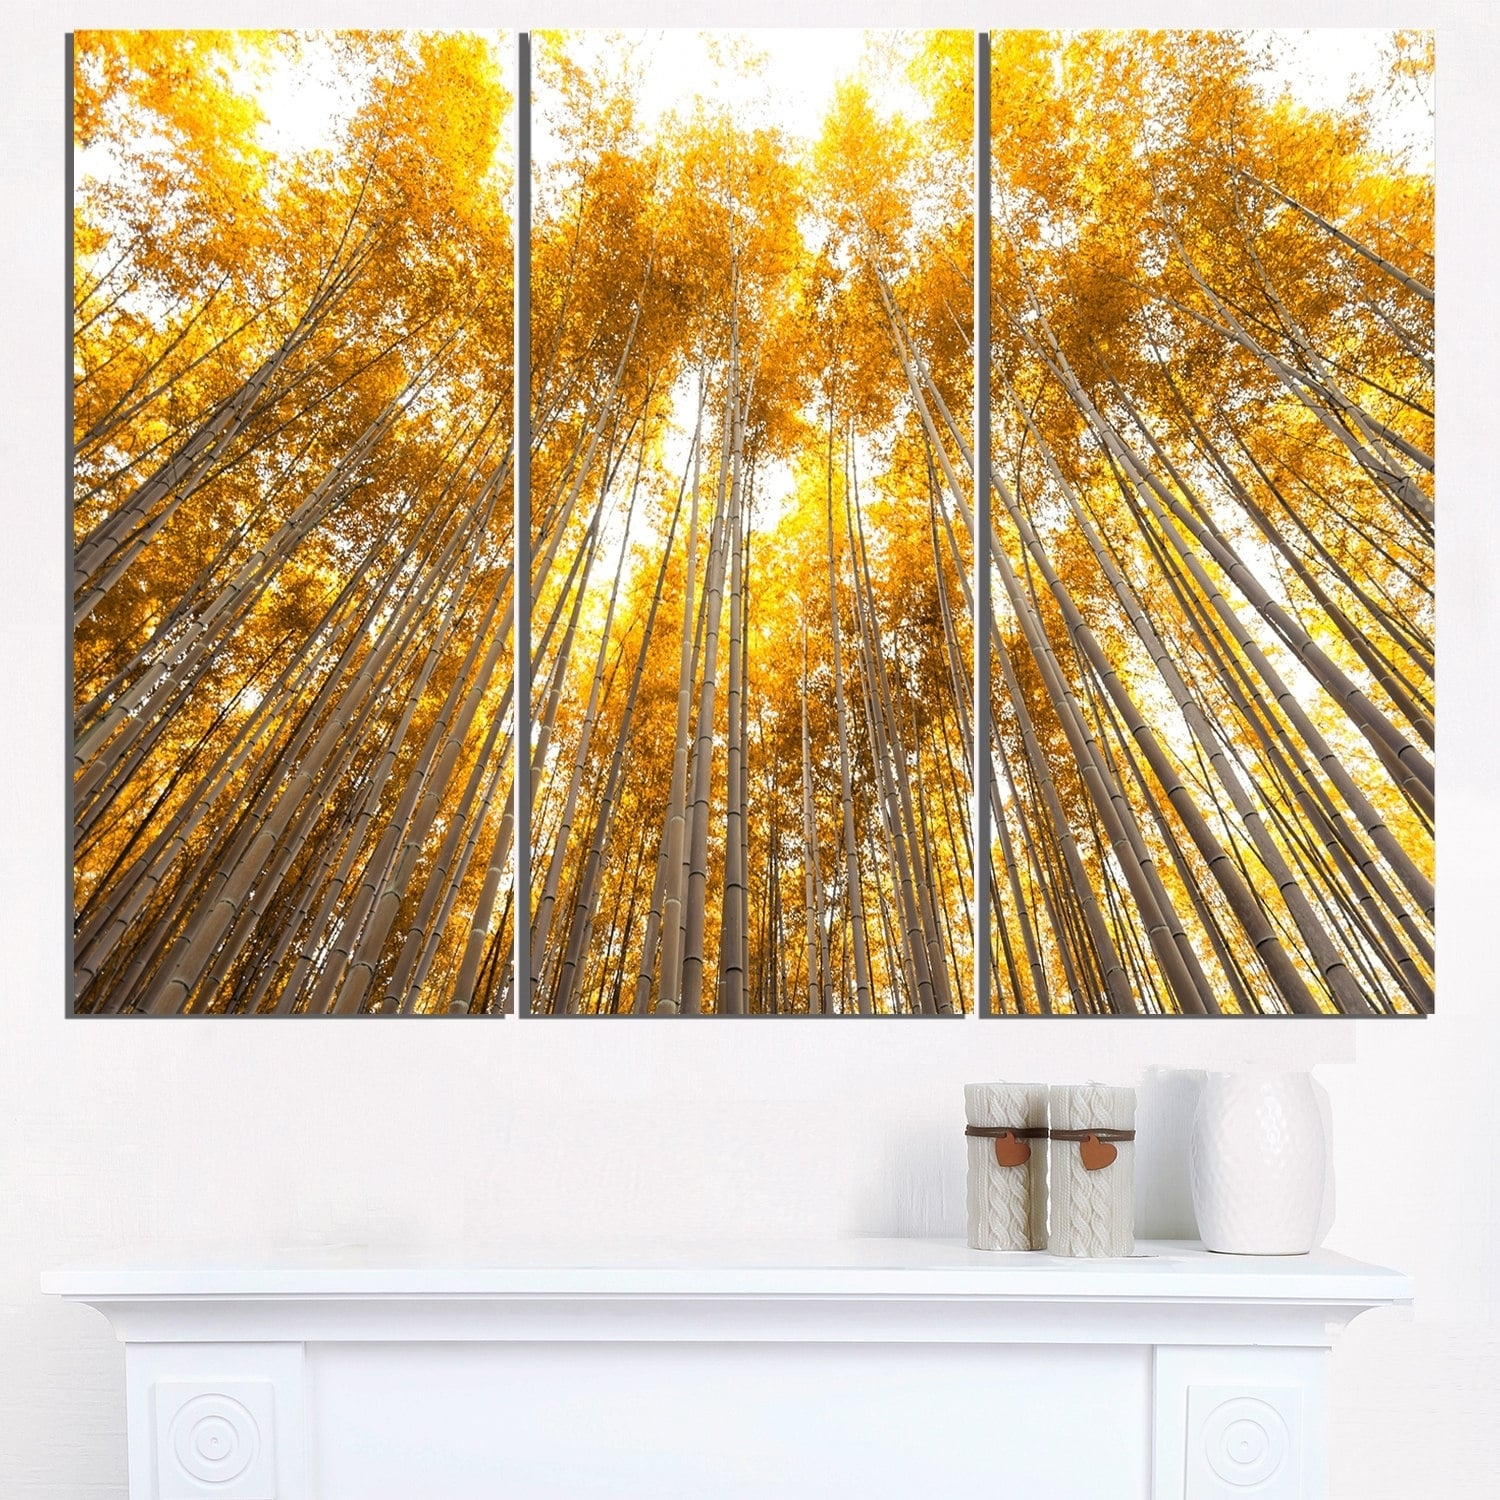 Magnificent Autumn Leaves Metal Wall Decor Ideas - The Wall Art ...